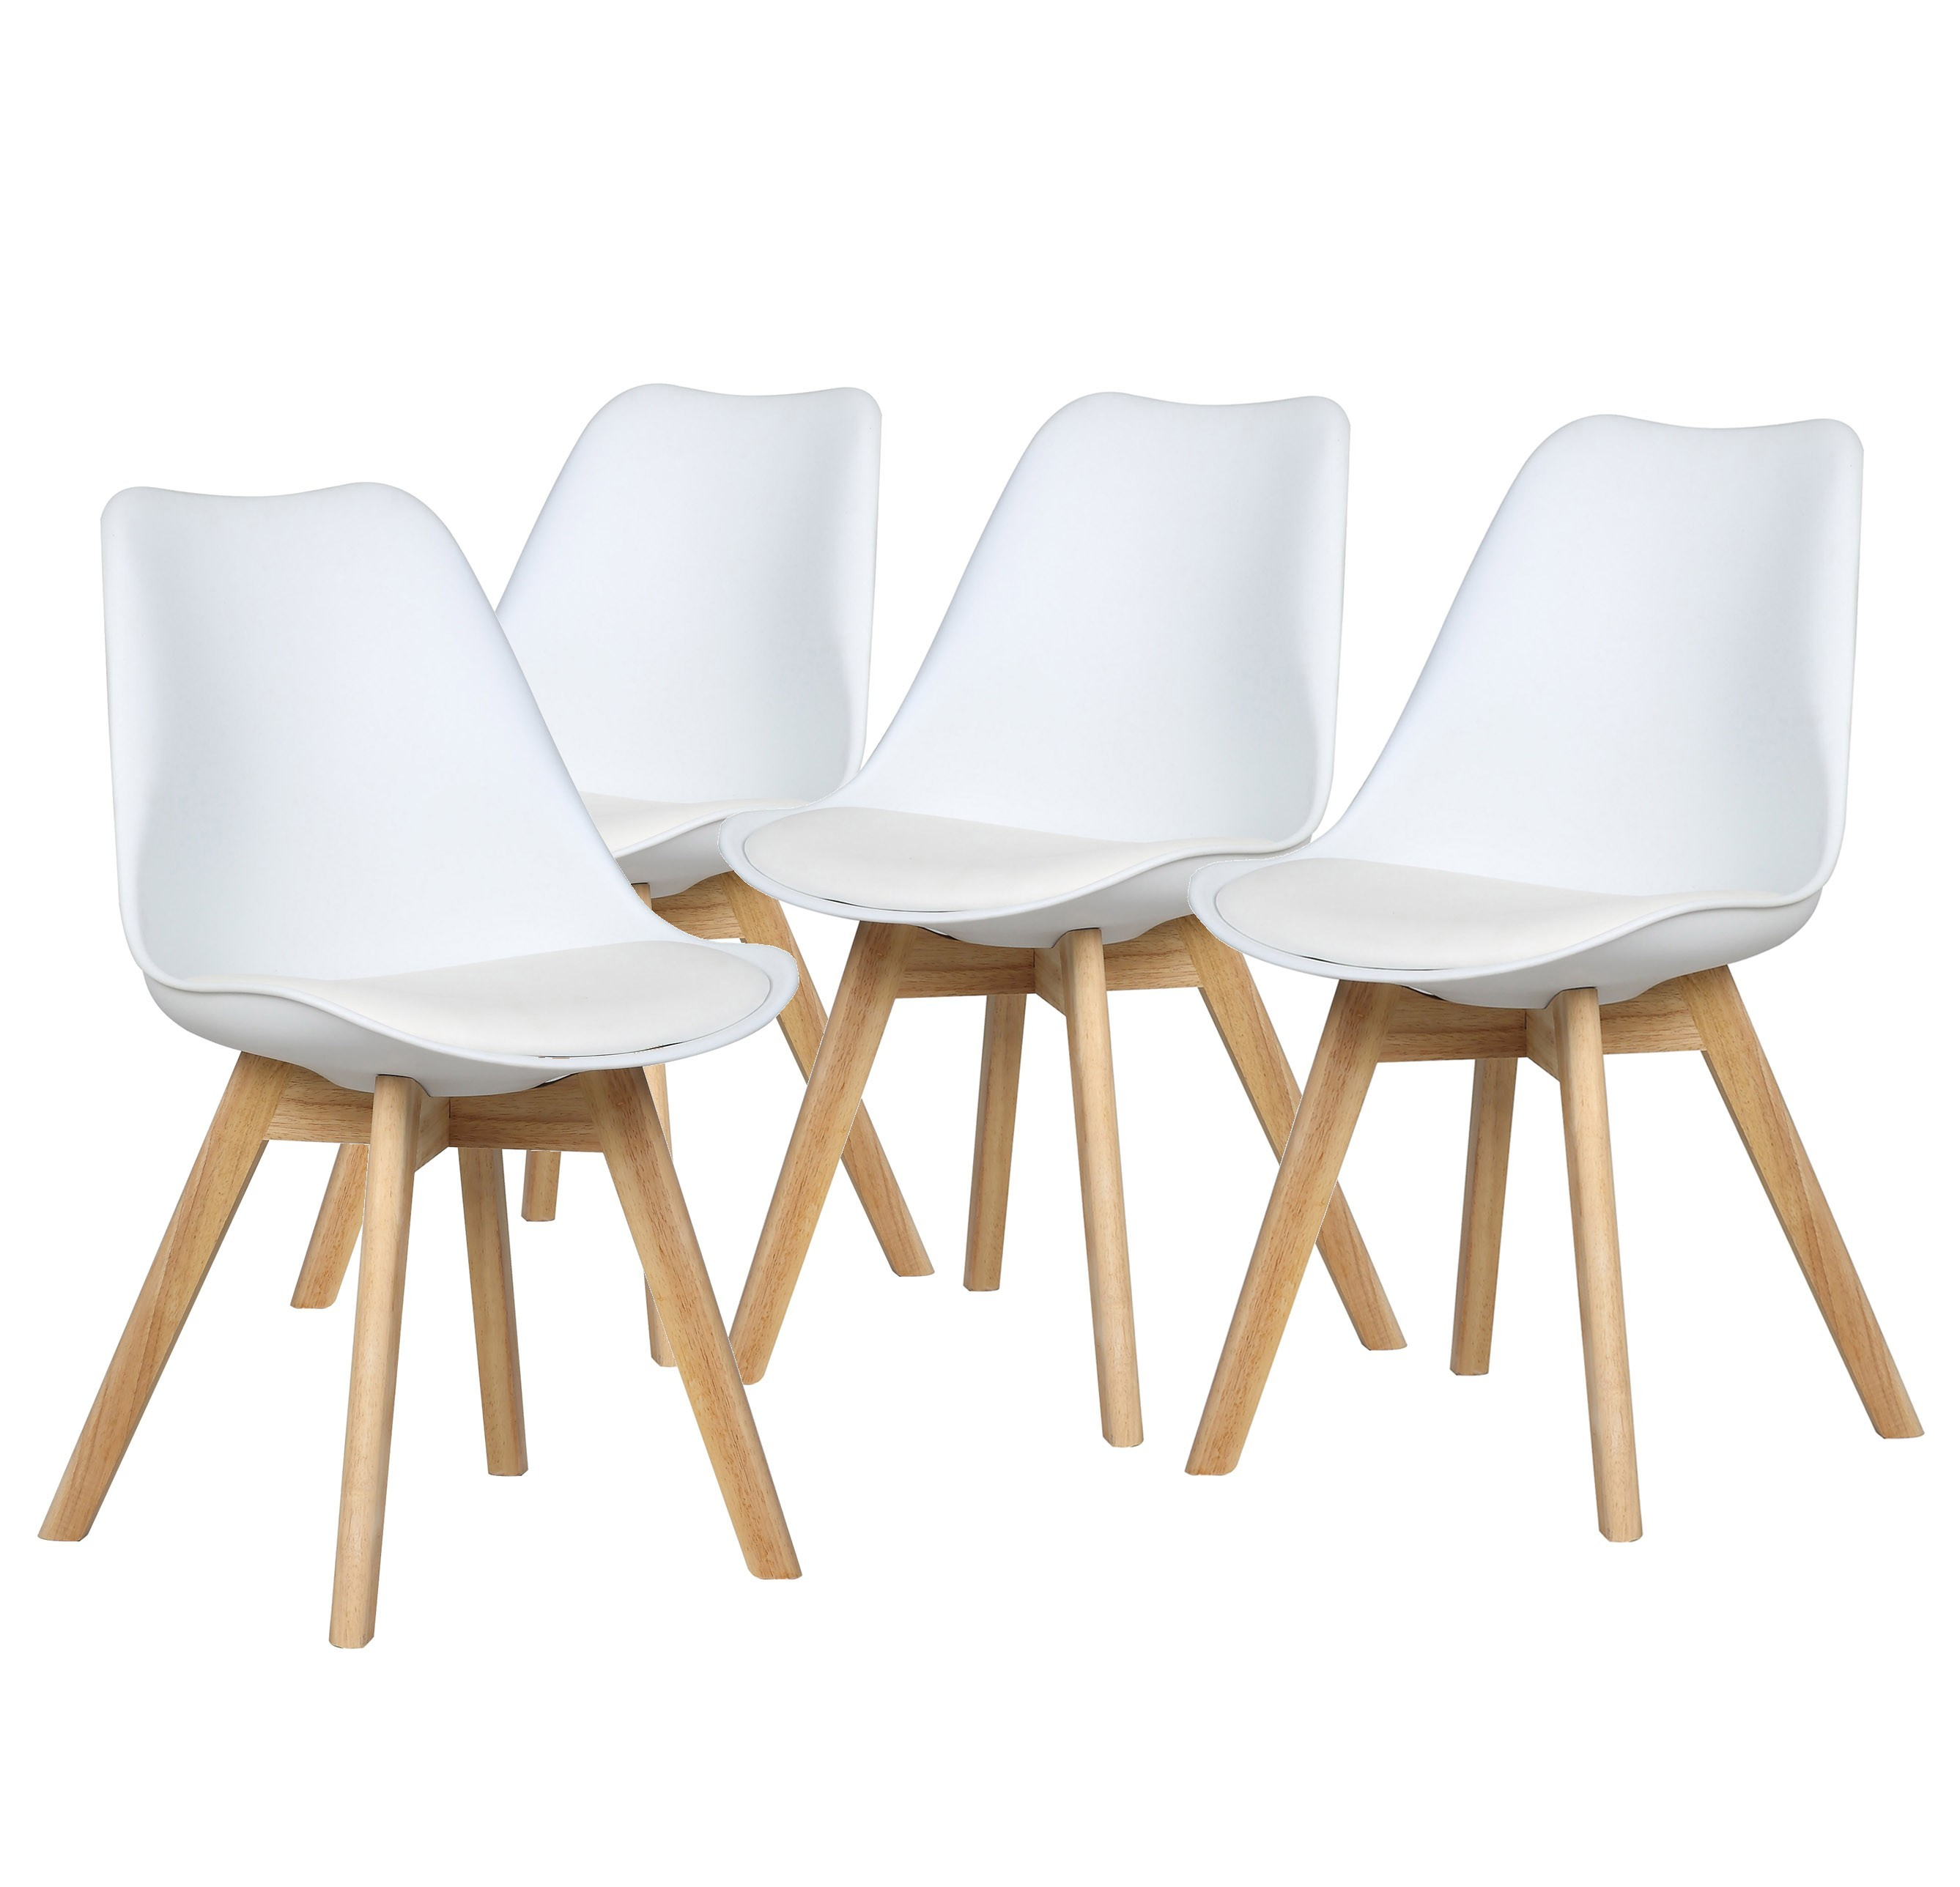 Malmö - Lot de 4 chaises design scandinave - Blanc Pu